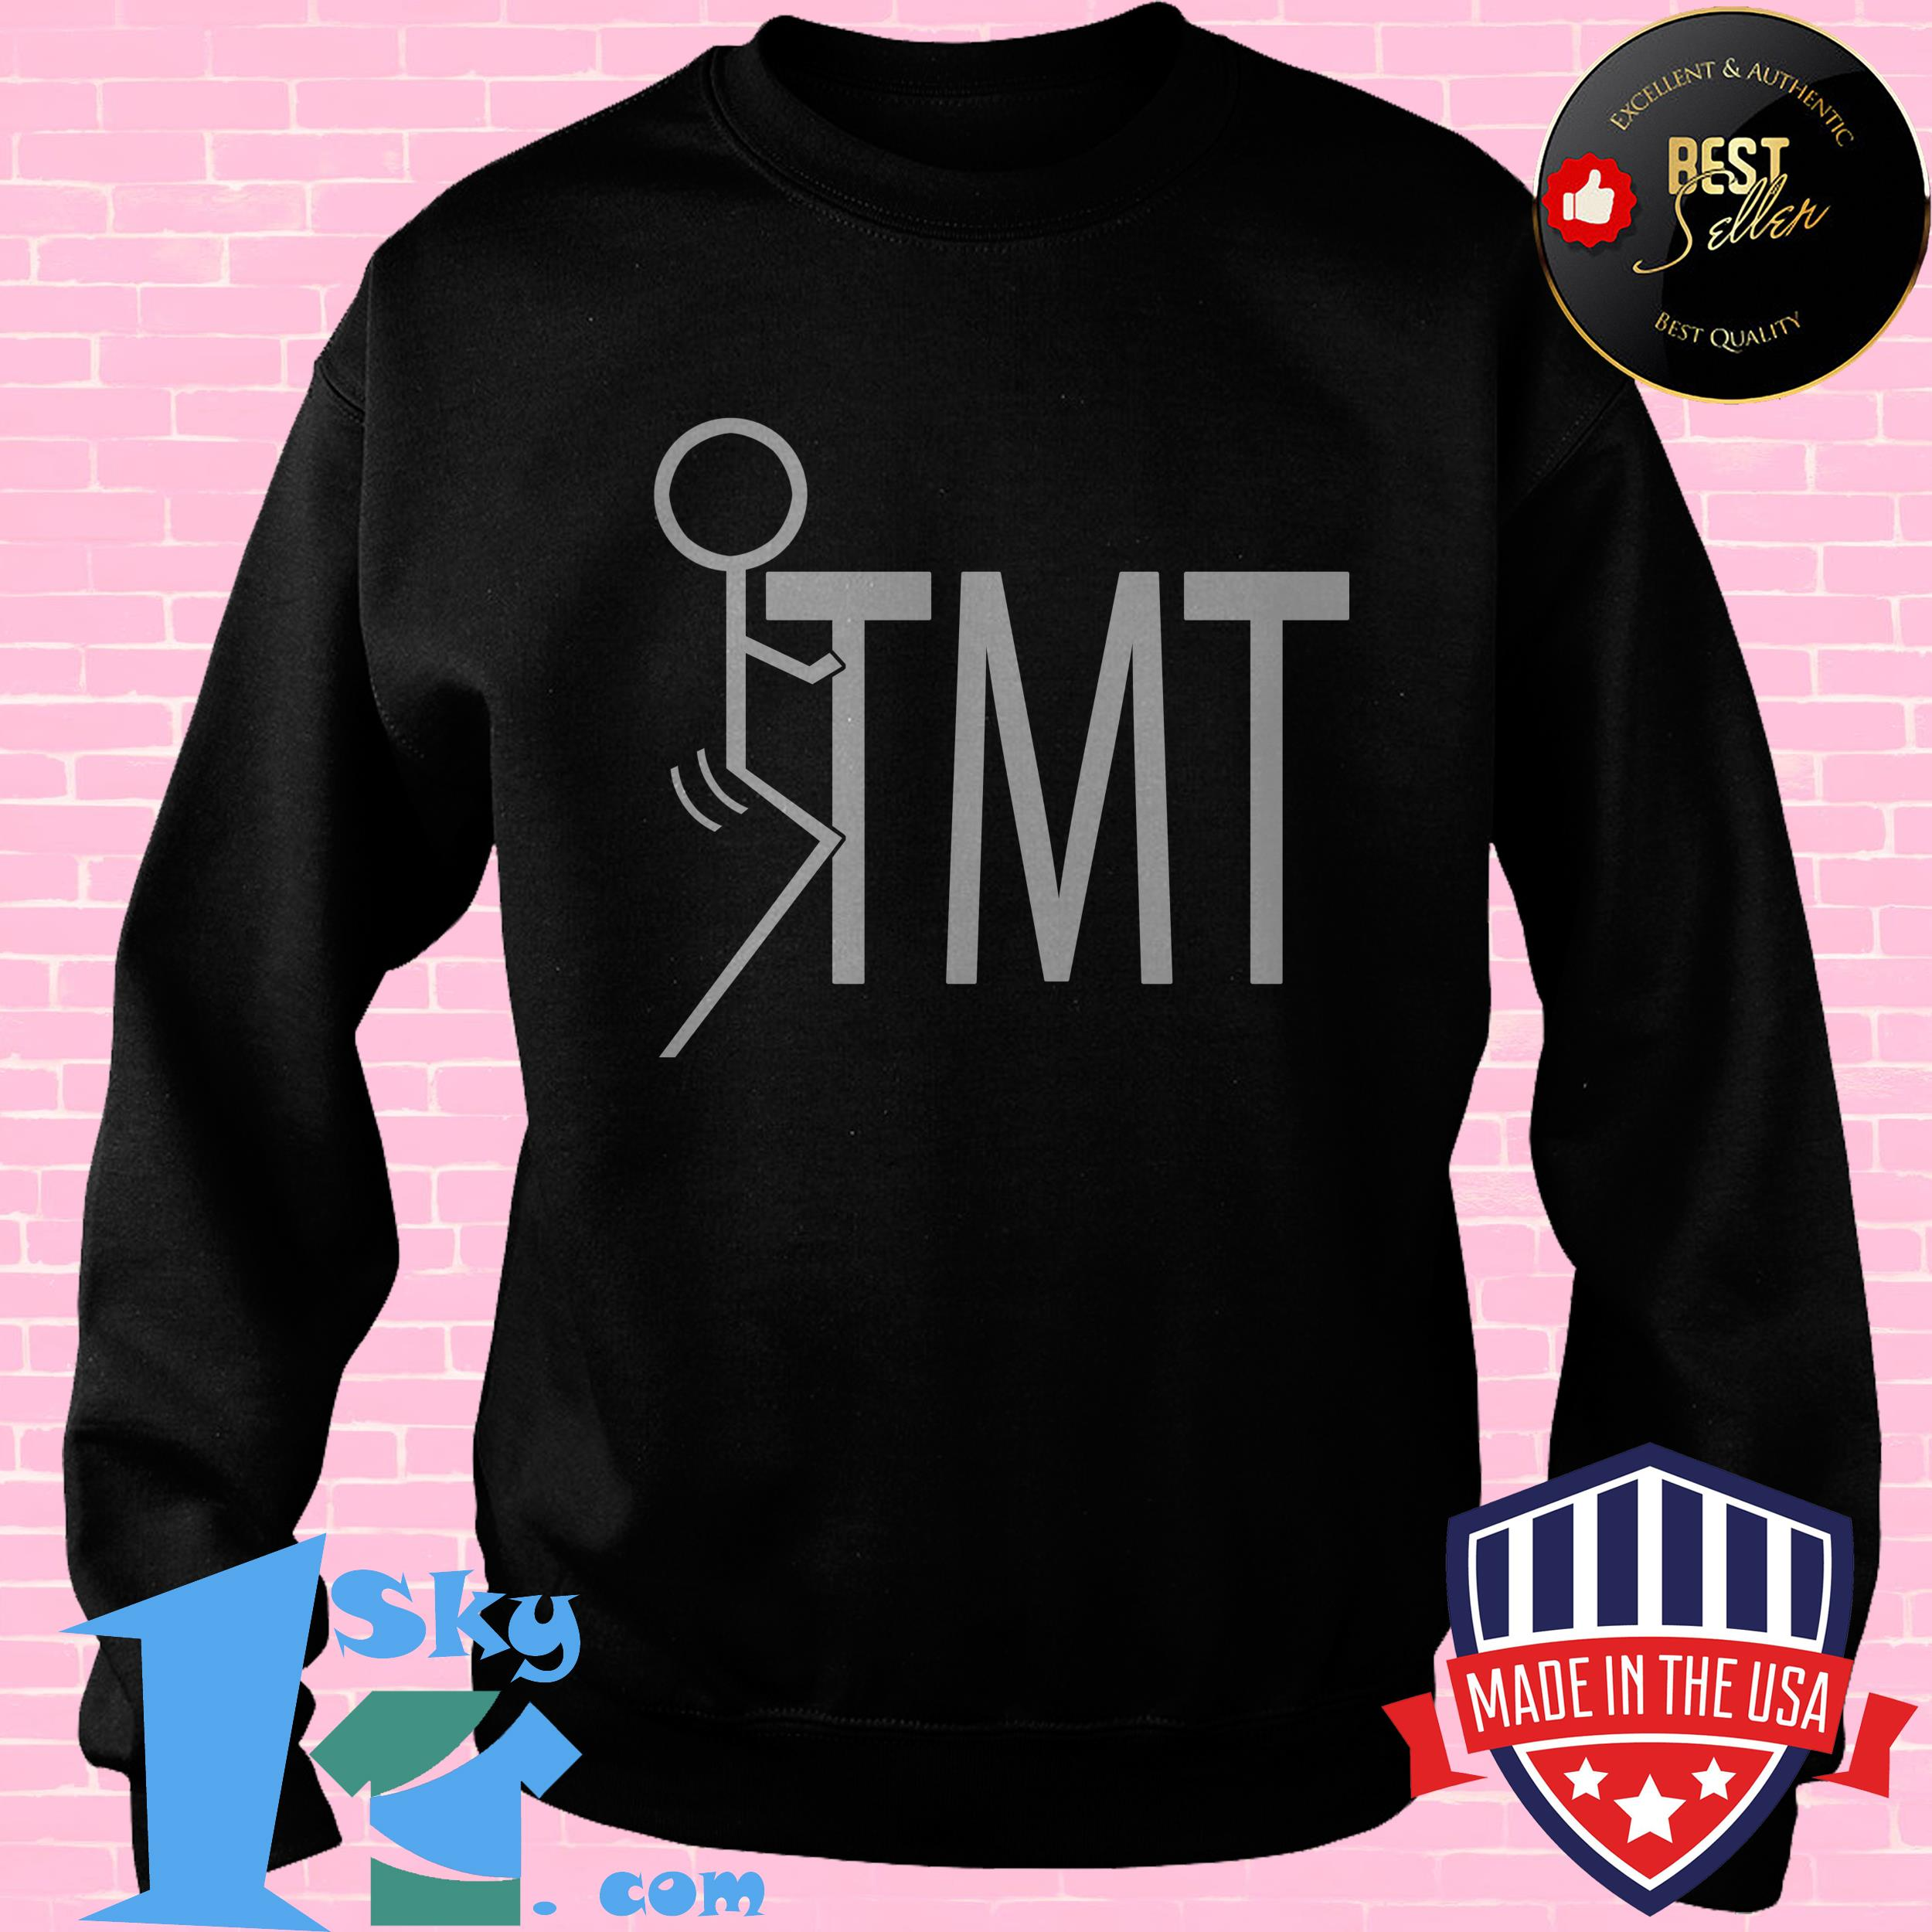 official tmt the money team sweatshirt - Official TMT The Money Team shirt